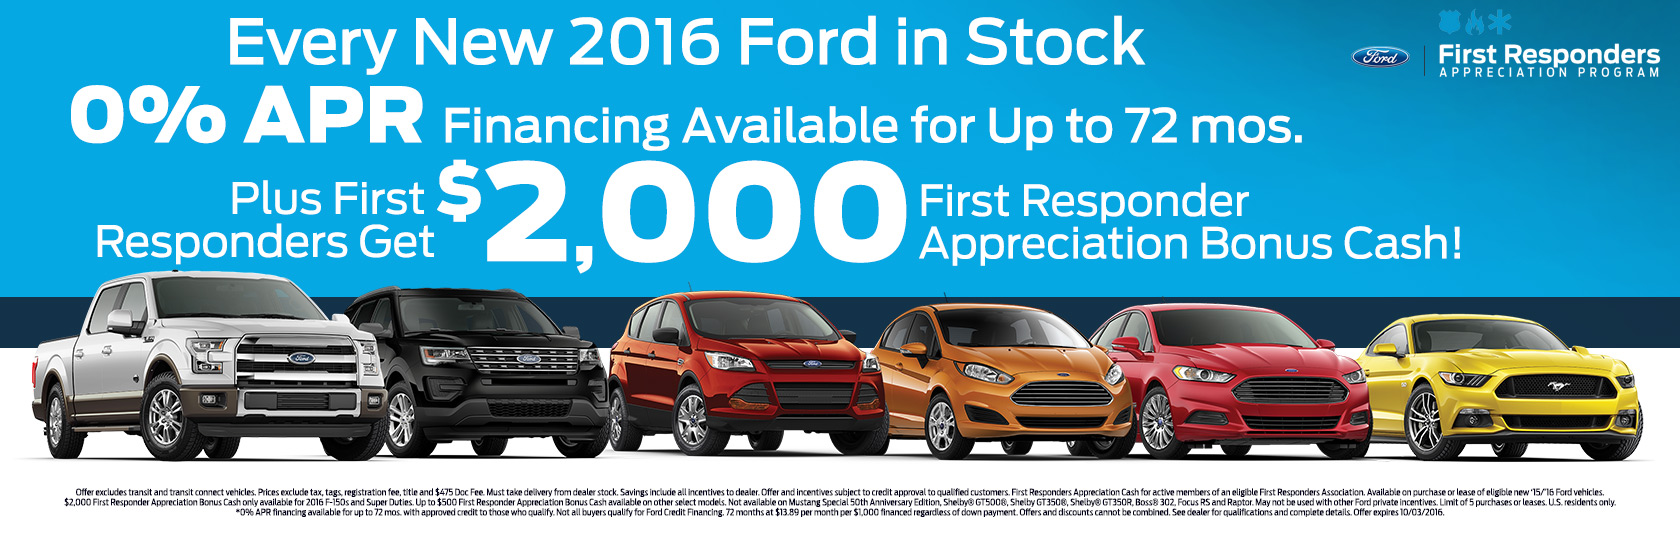 Get 0 apr financing for 72 months on every new 2016 ford in stock plus 2000 first responder appreciation bonus cash available to those who qualify